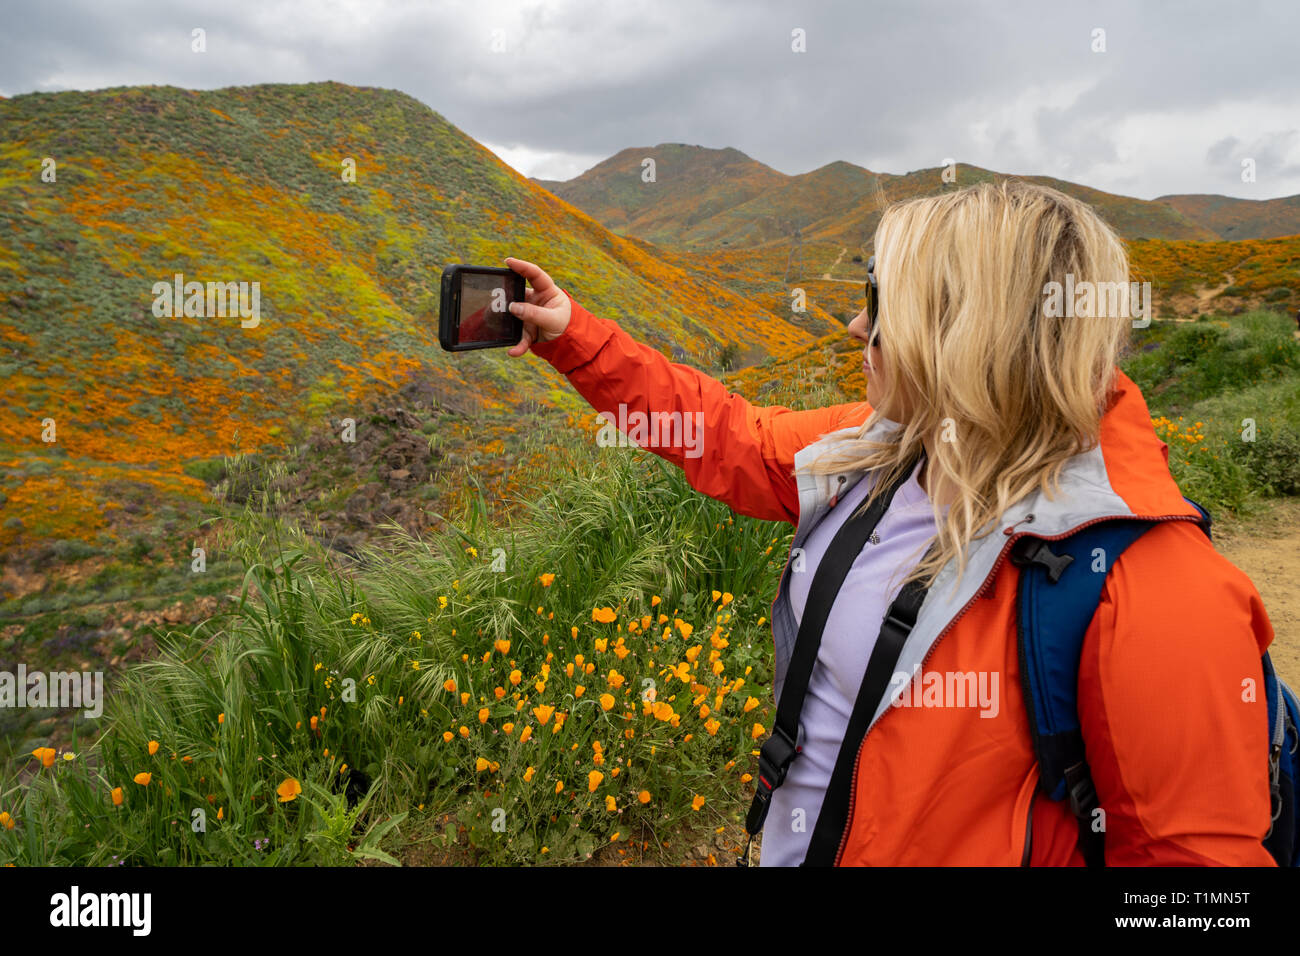 Blonde woman hiker takes a selfie with a cell phone while at Walker Canyon, enjoying the California Poppies superbloom - Stock Image